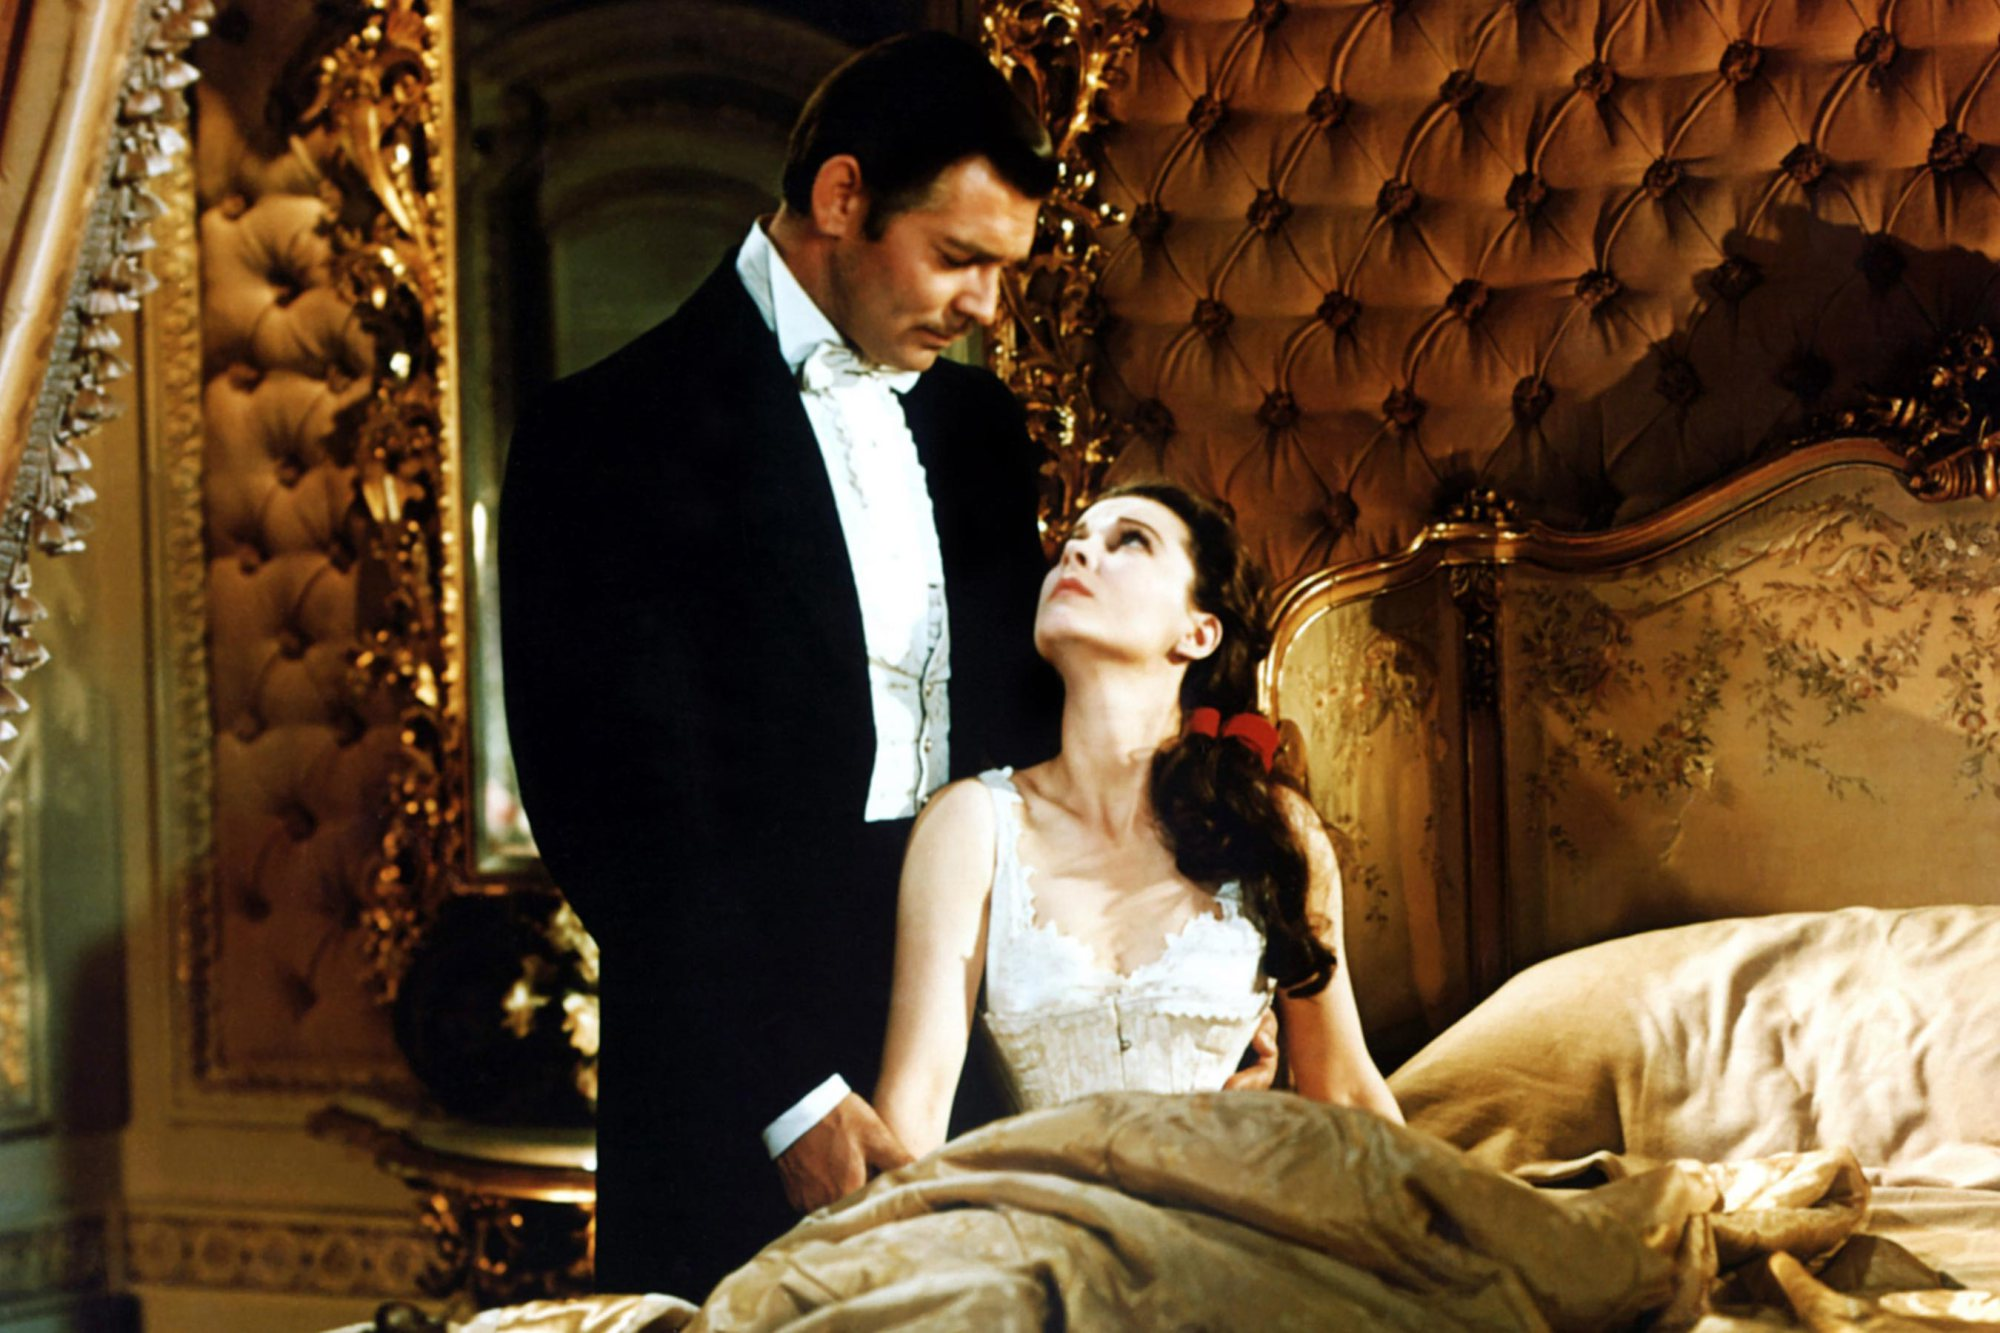 GONE WITH THE WIND, from left: Clark Gable, Vivien Leigh, 1939